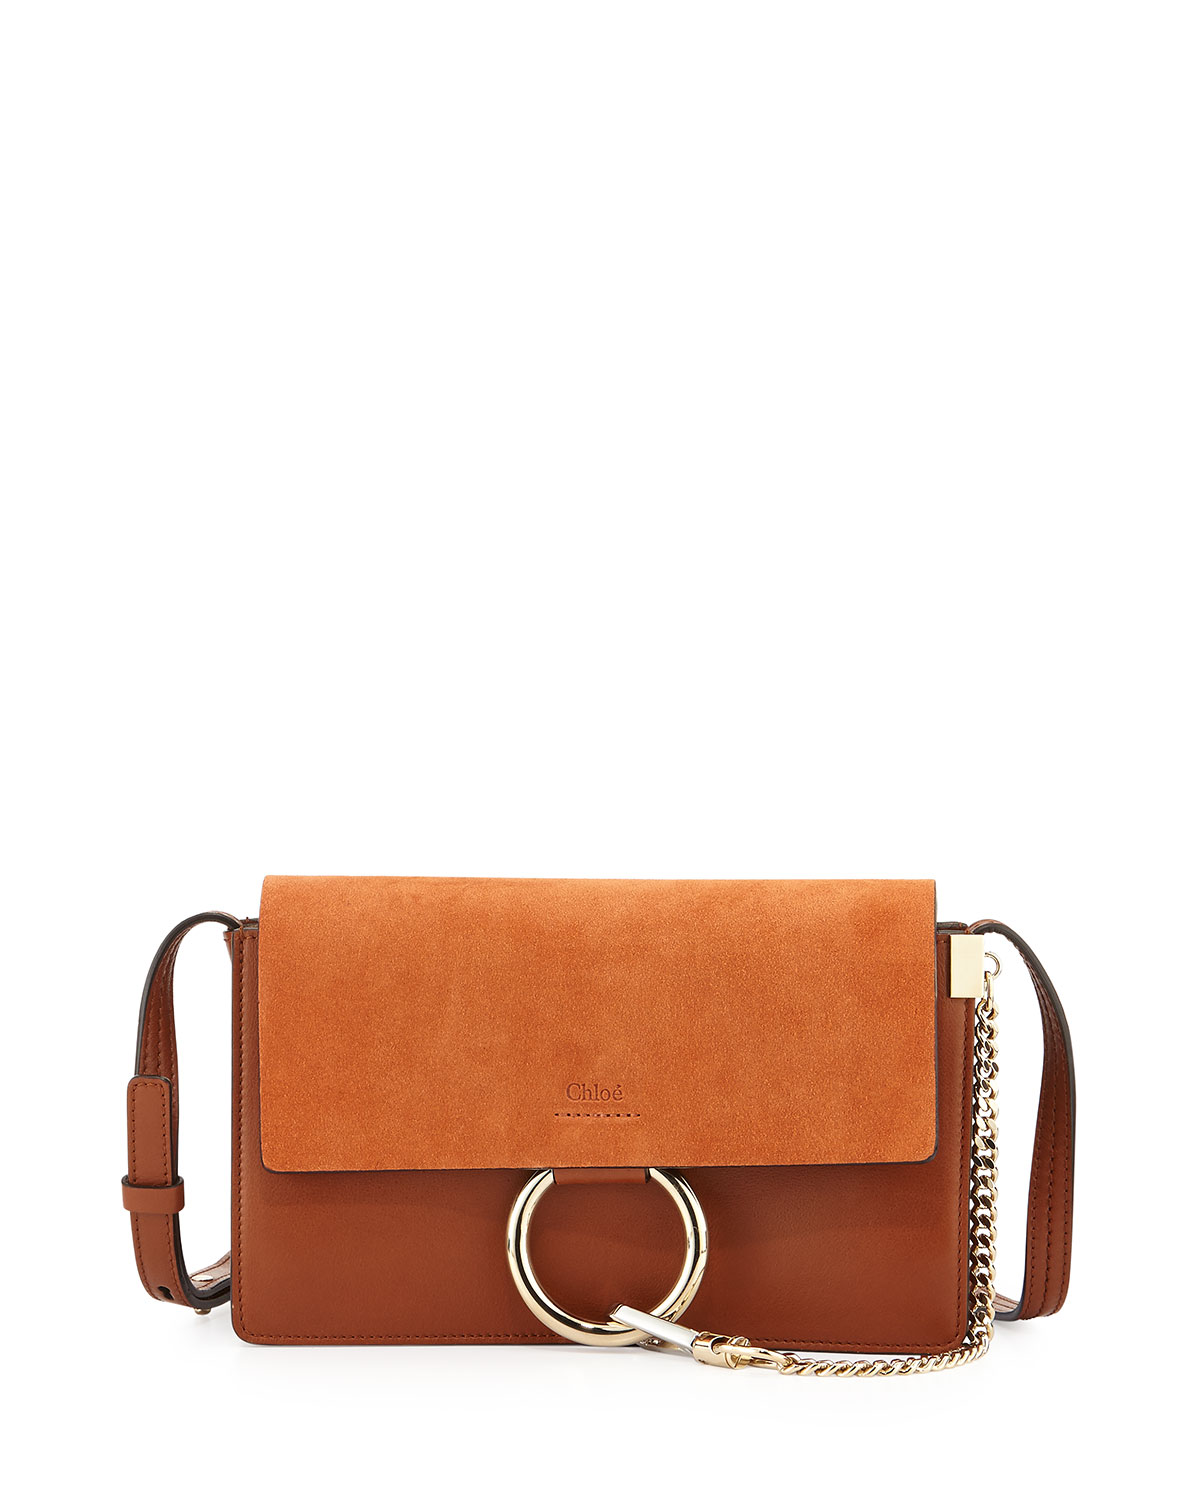 Faye Small Suede Shoulder Bag, Brown, Size: S - Chloe